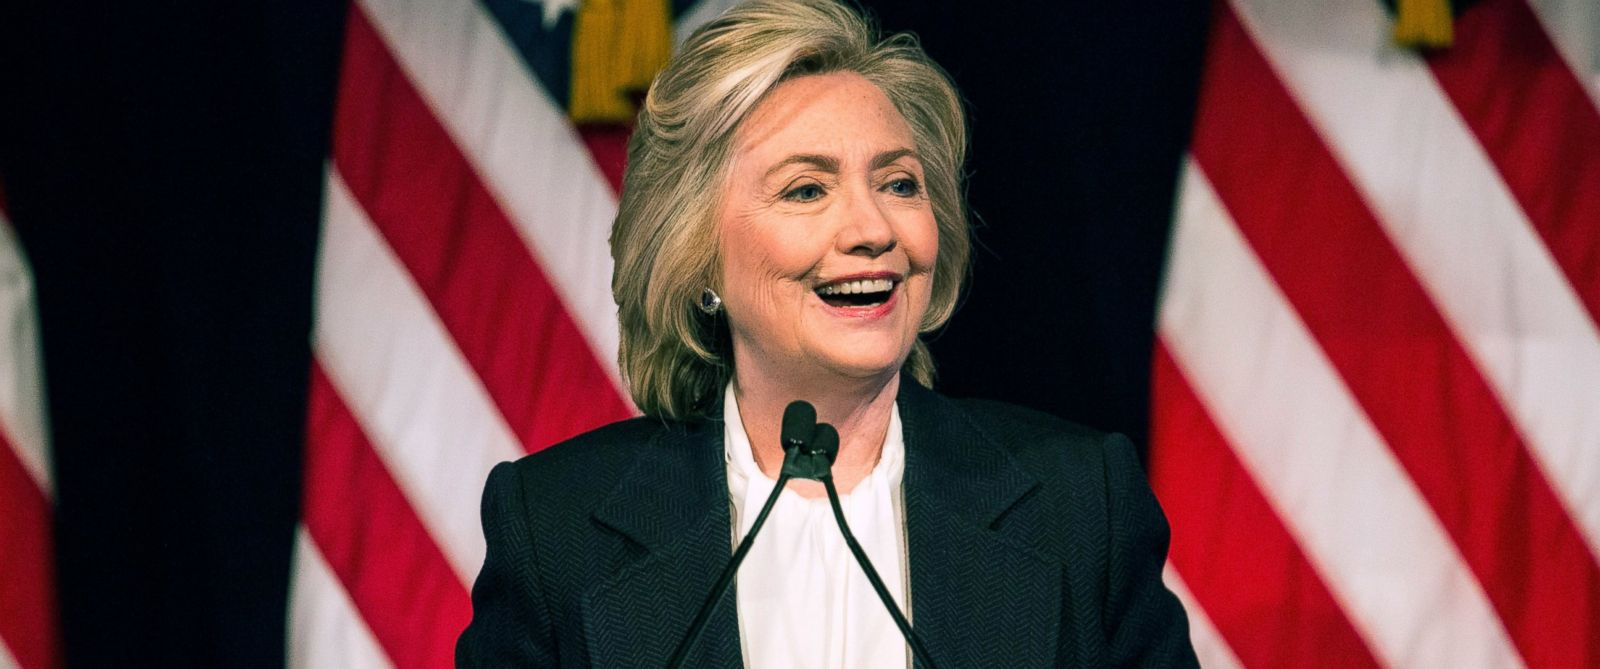 PHOTO: Democratic presidential candidate Hillary Clinton speaks at The New School, July 13, 2015, in New York.